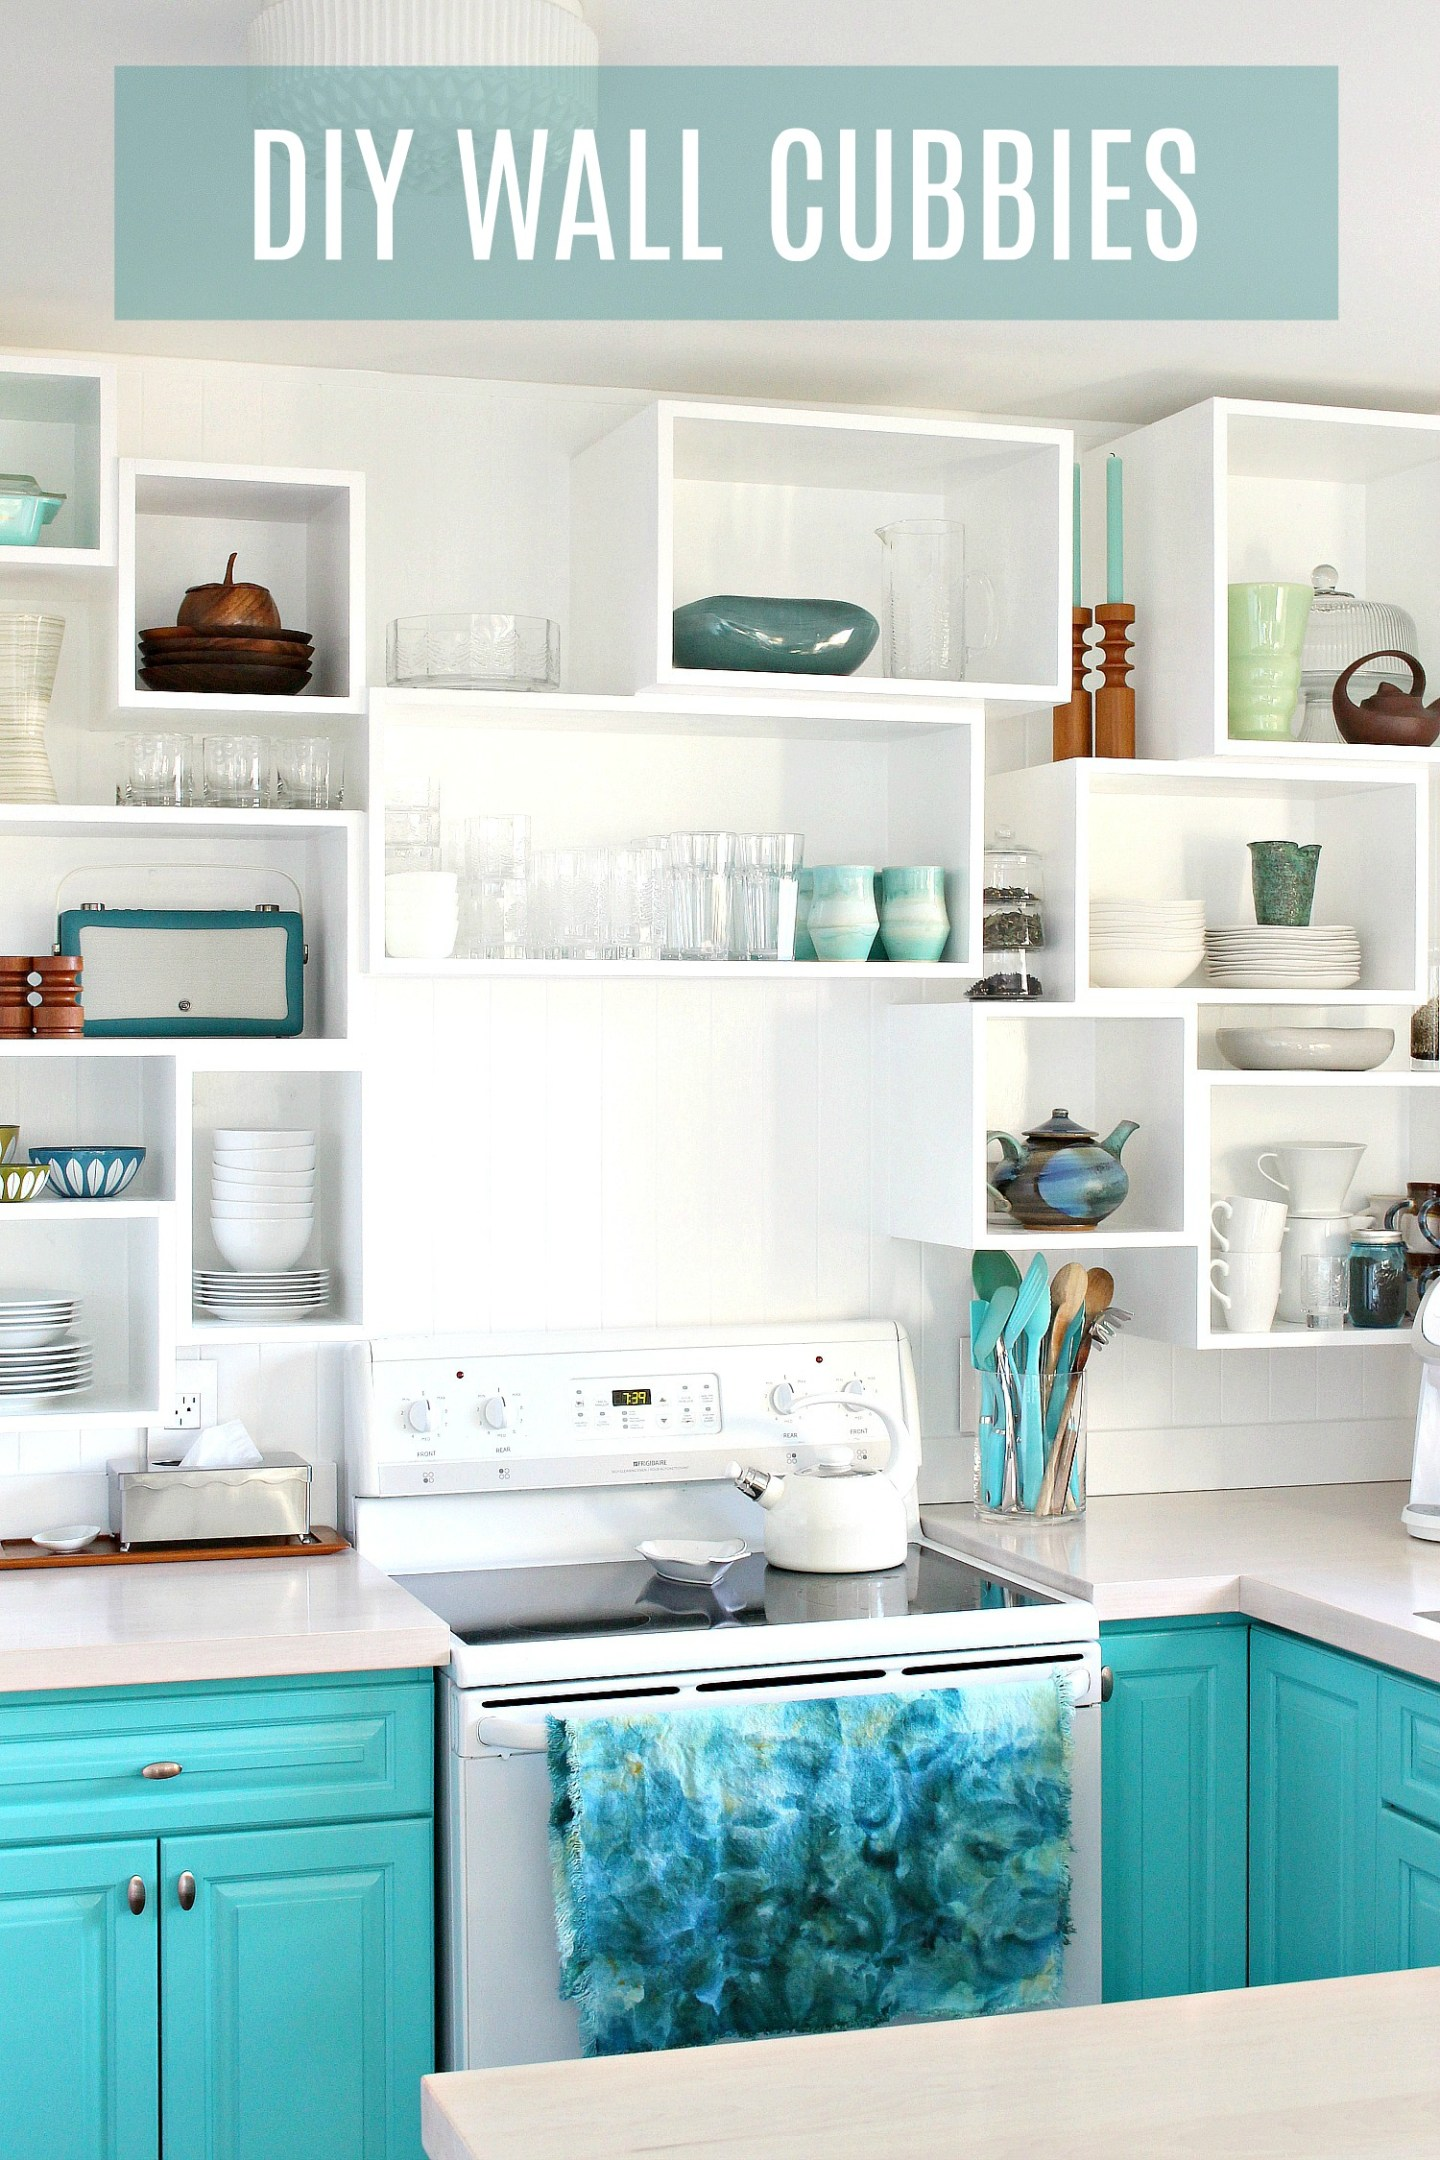 Learn how to build and install these DIY wall cubbies - a great way to add custom storage anywhere and a fun alternative to open shelving in the kitchen!